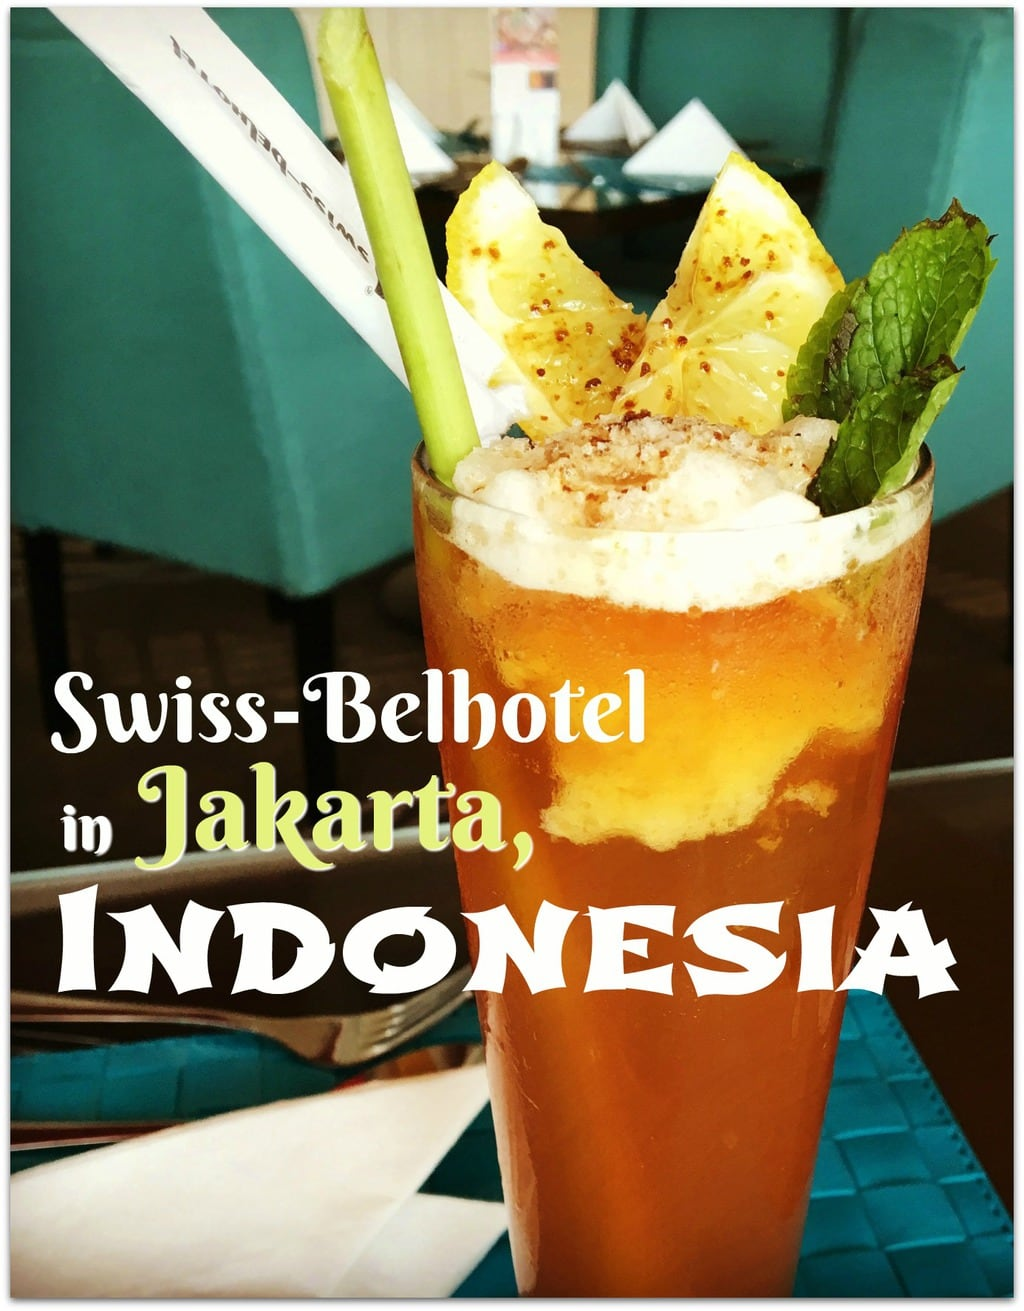 If you're looking for a place to relax after flying into Jakarta, the Swiss Belhotel Airport is wonderful!